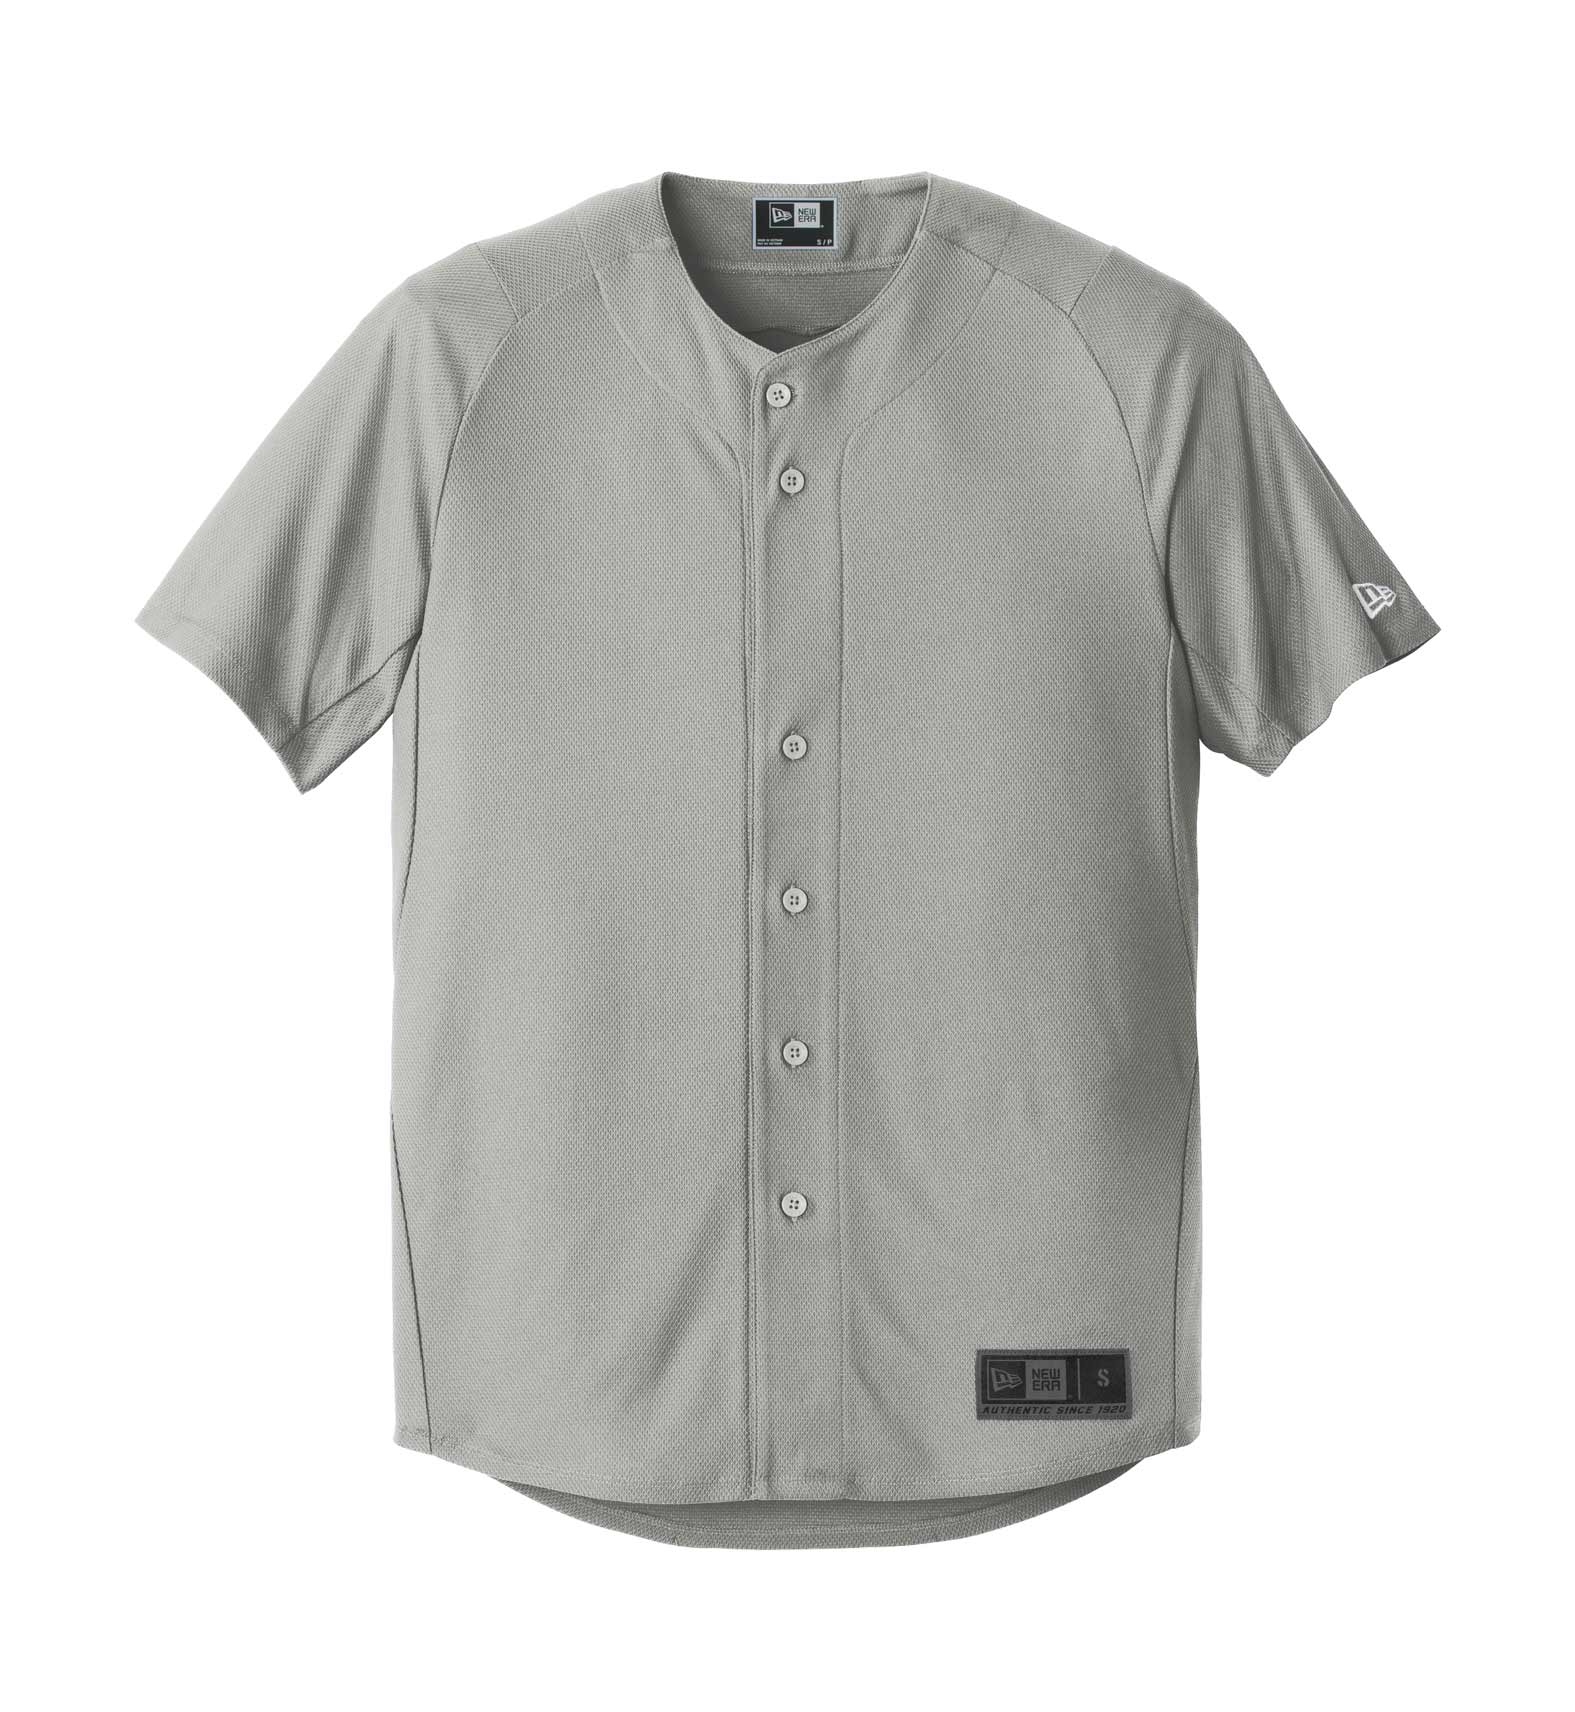 88b5872787b New Era® Mens Diamond Era Full-Button Jersey - Design Online